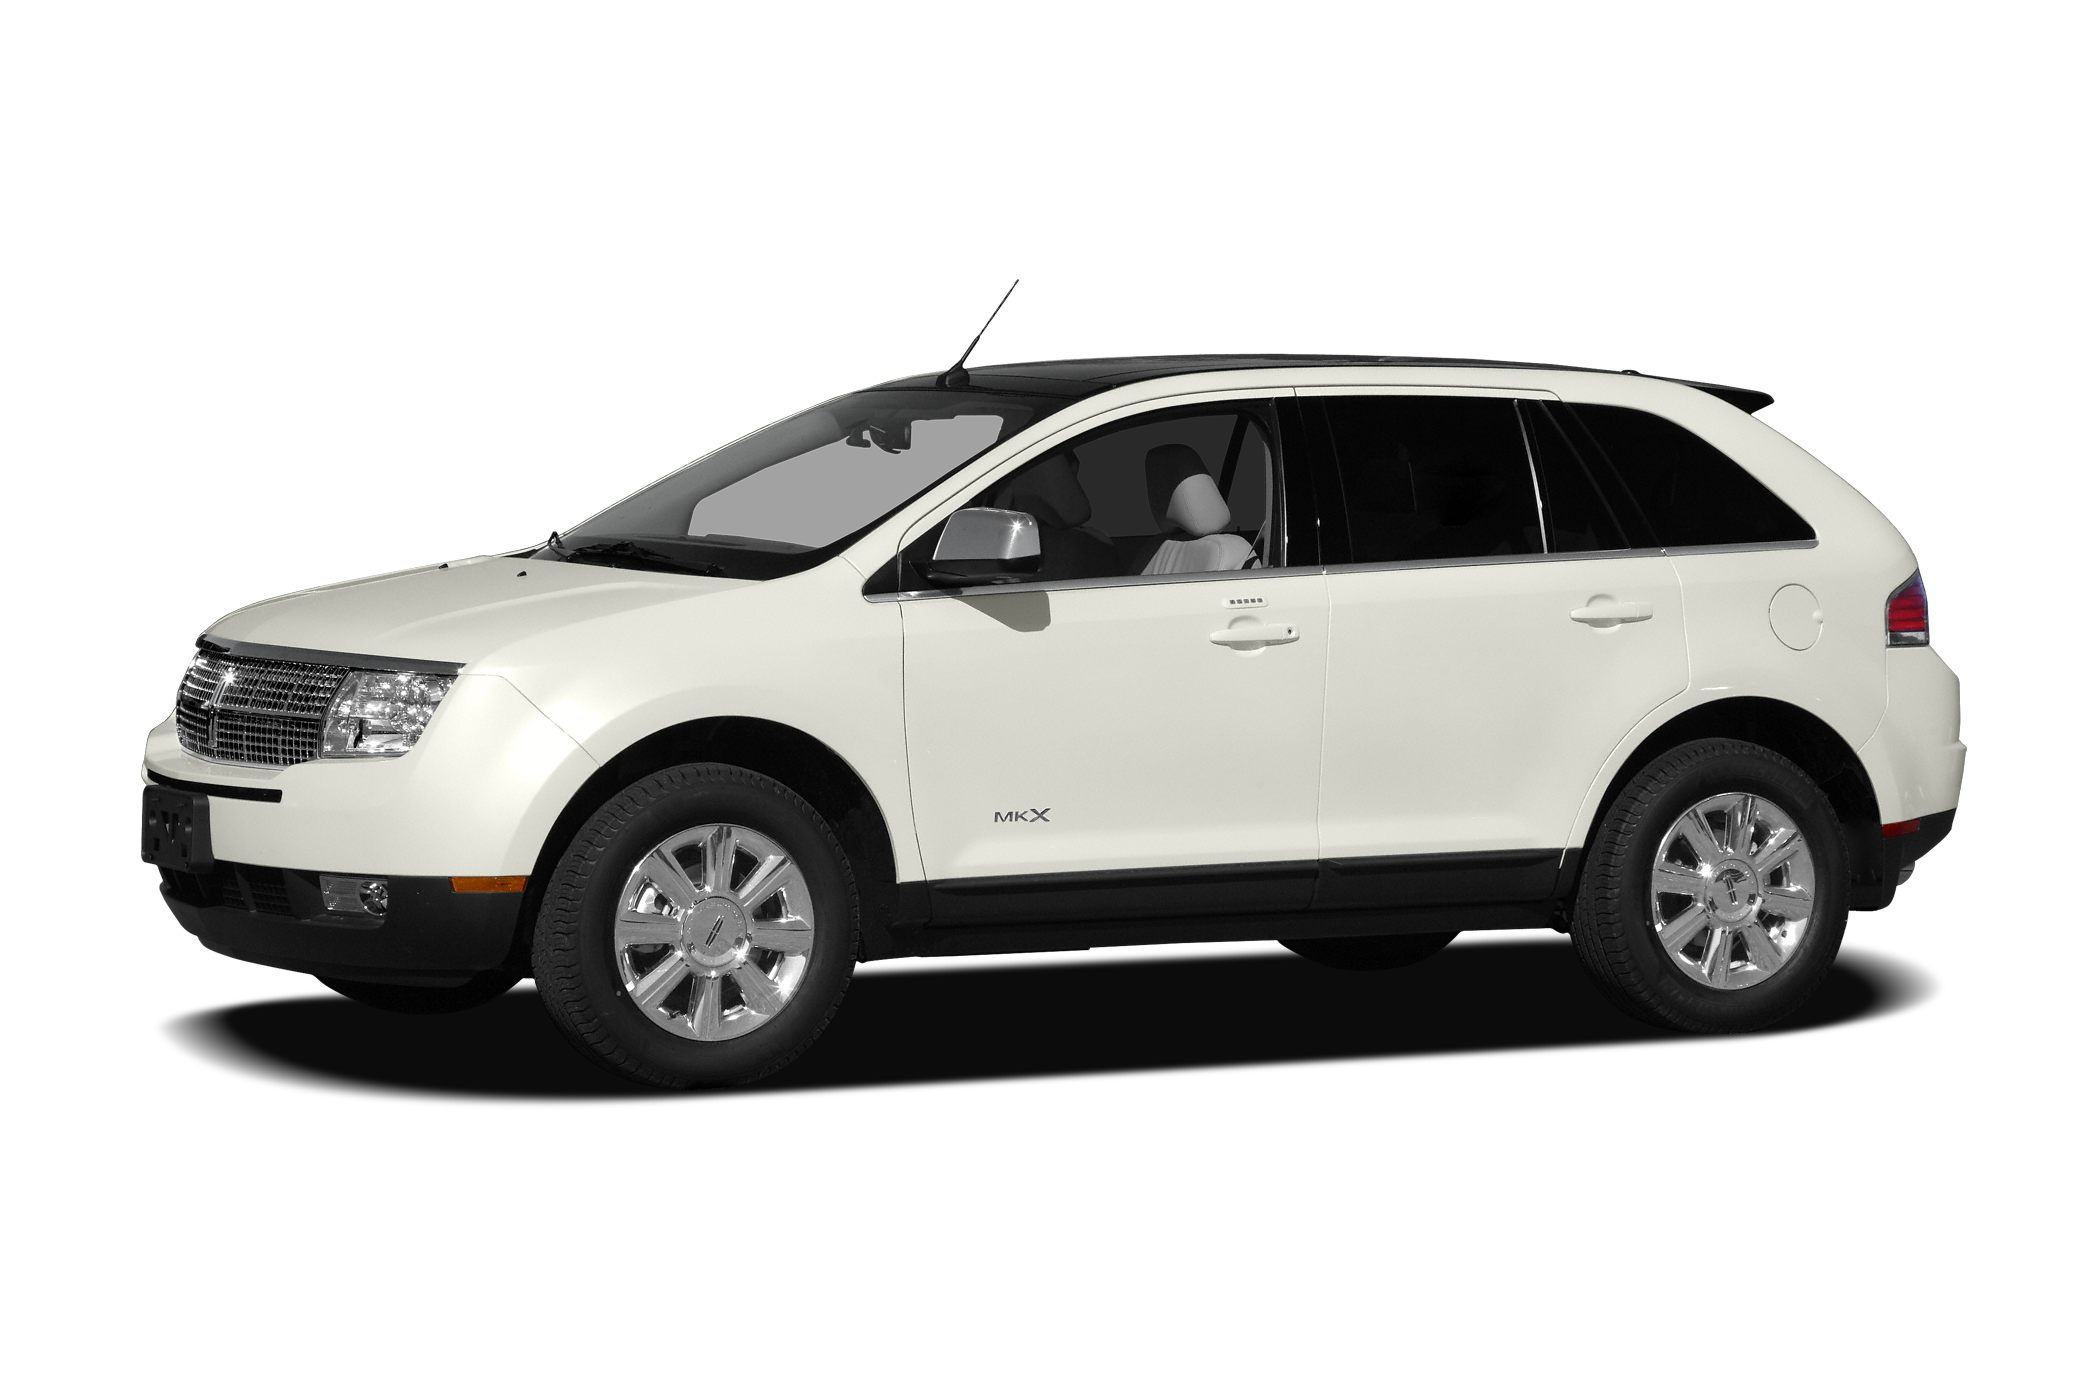 2010 Lincoln MKX SUV for sale in Lynnwood for $18,491 with 98,754 miles